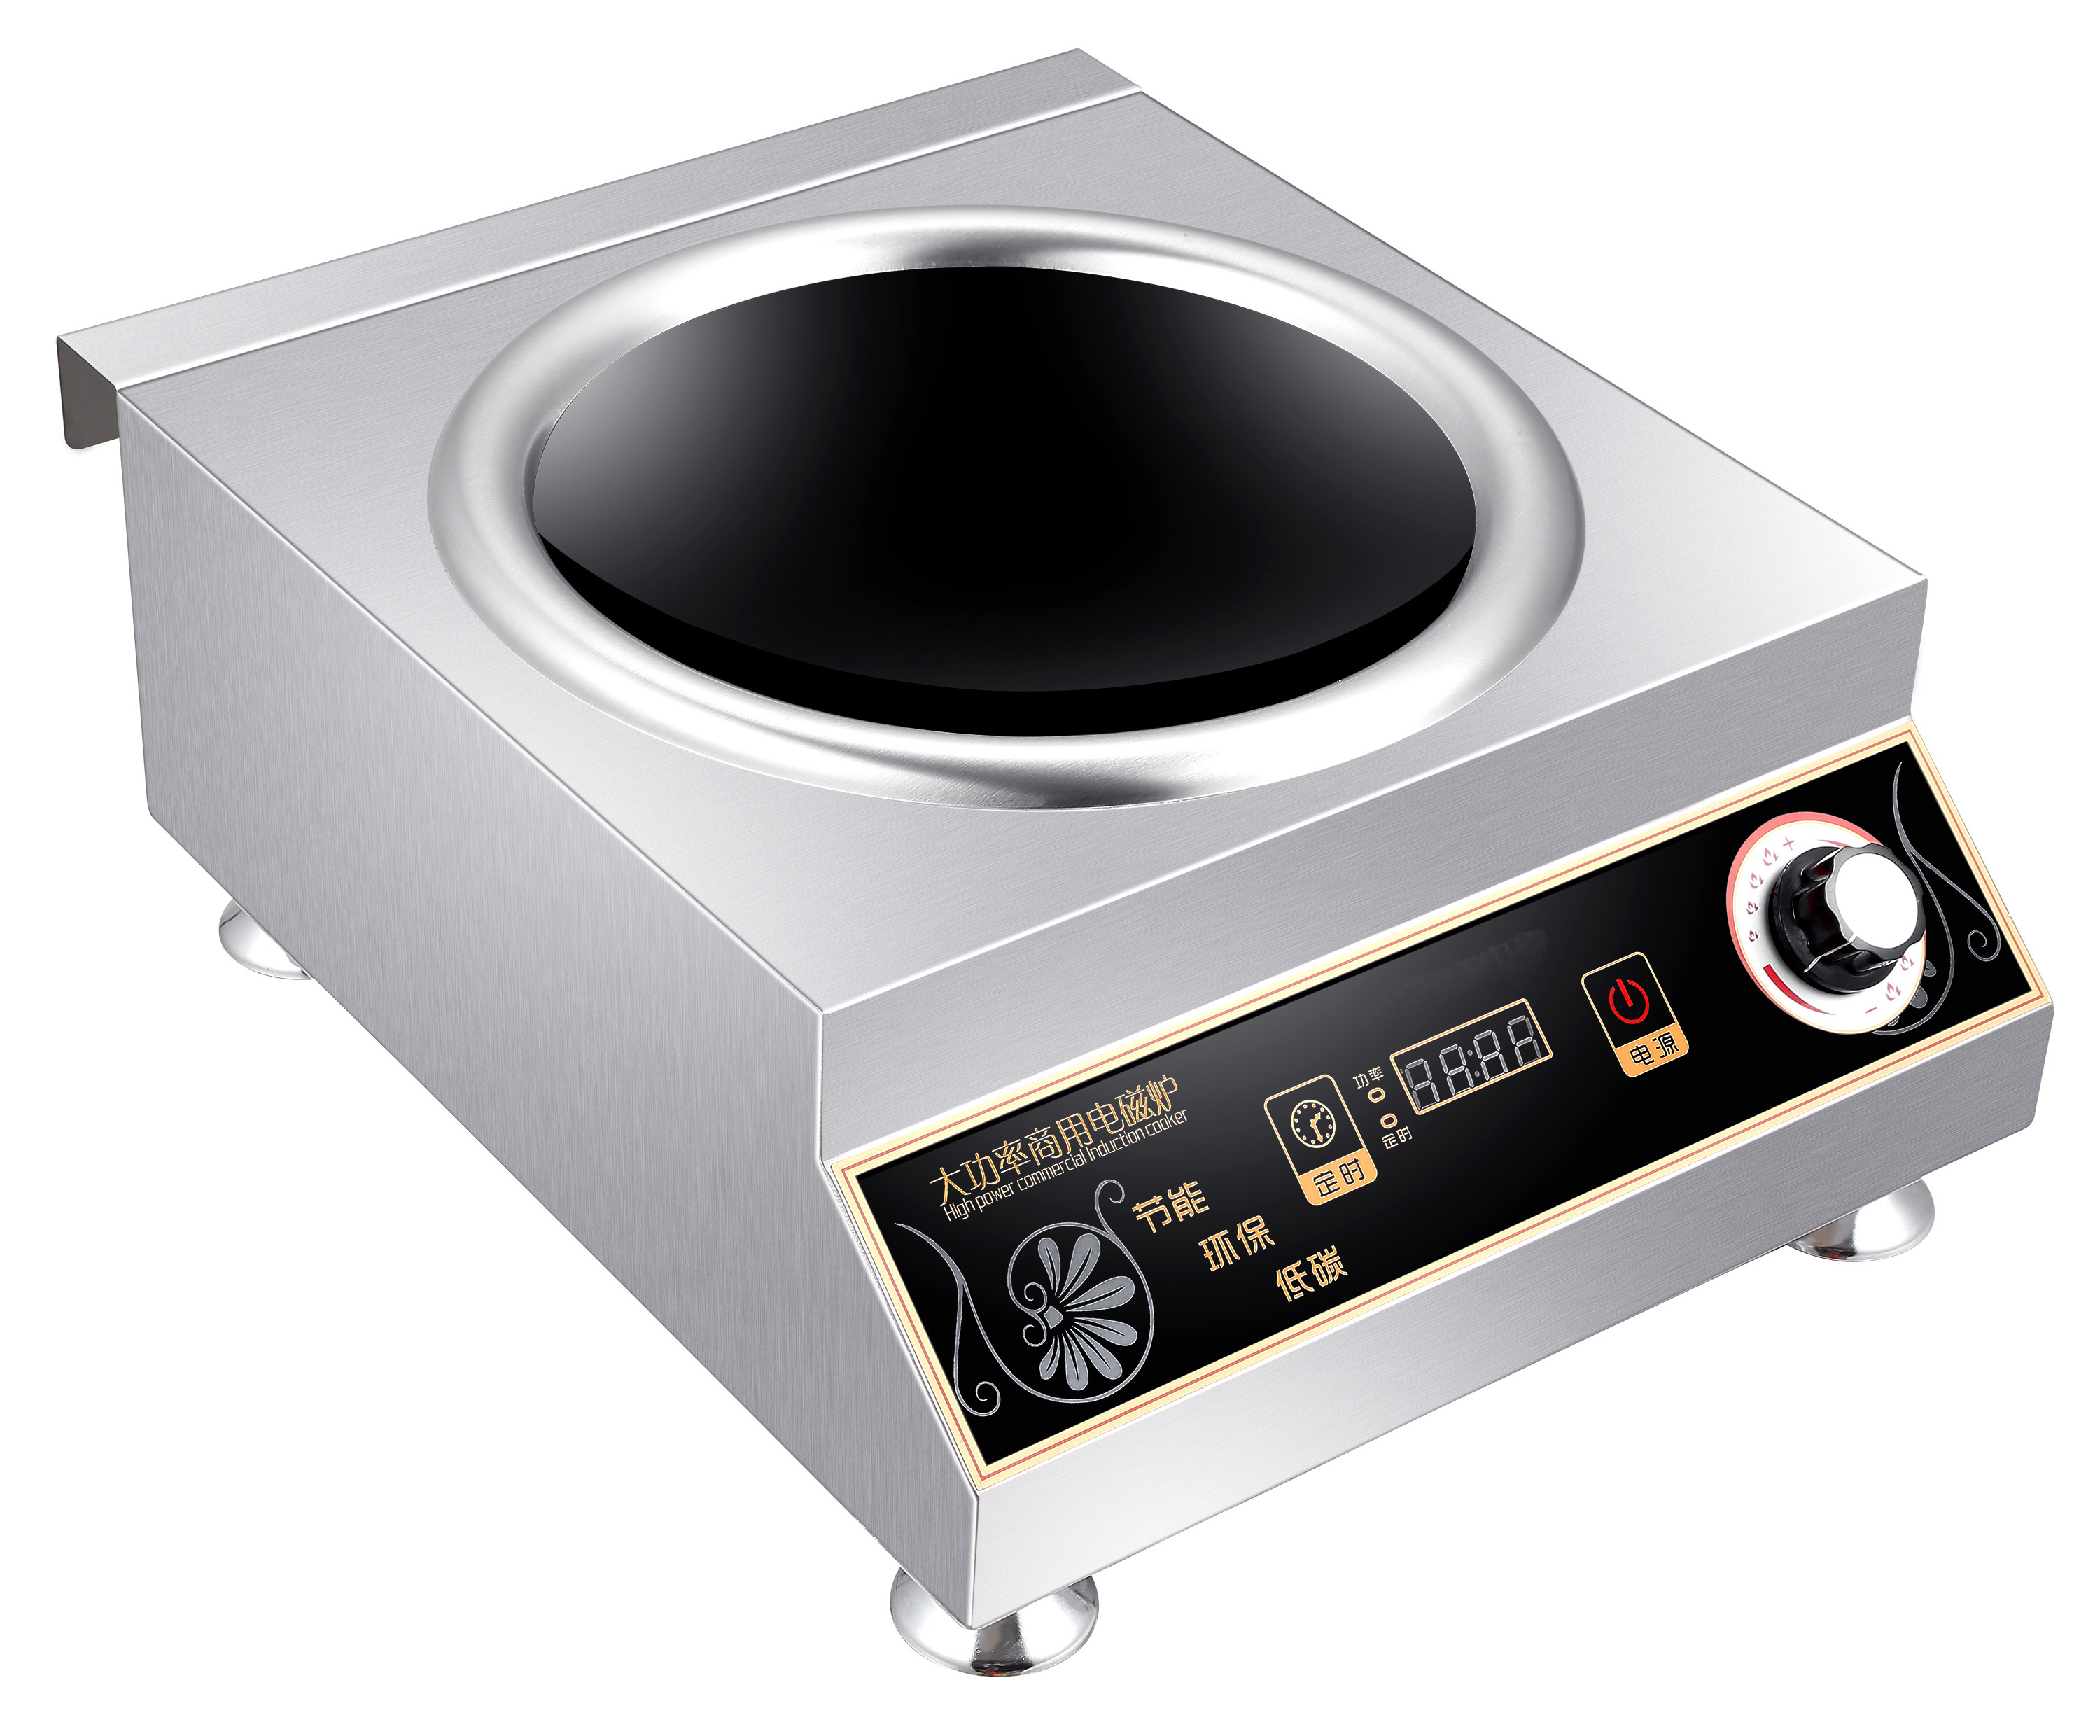 5000W high quality commercial induction cooker